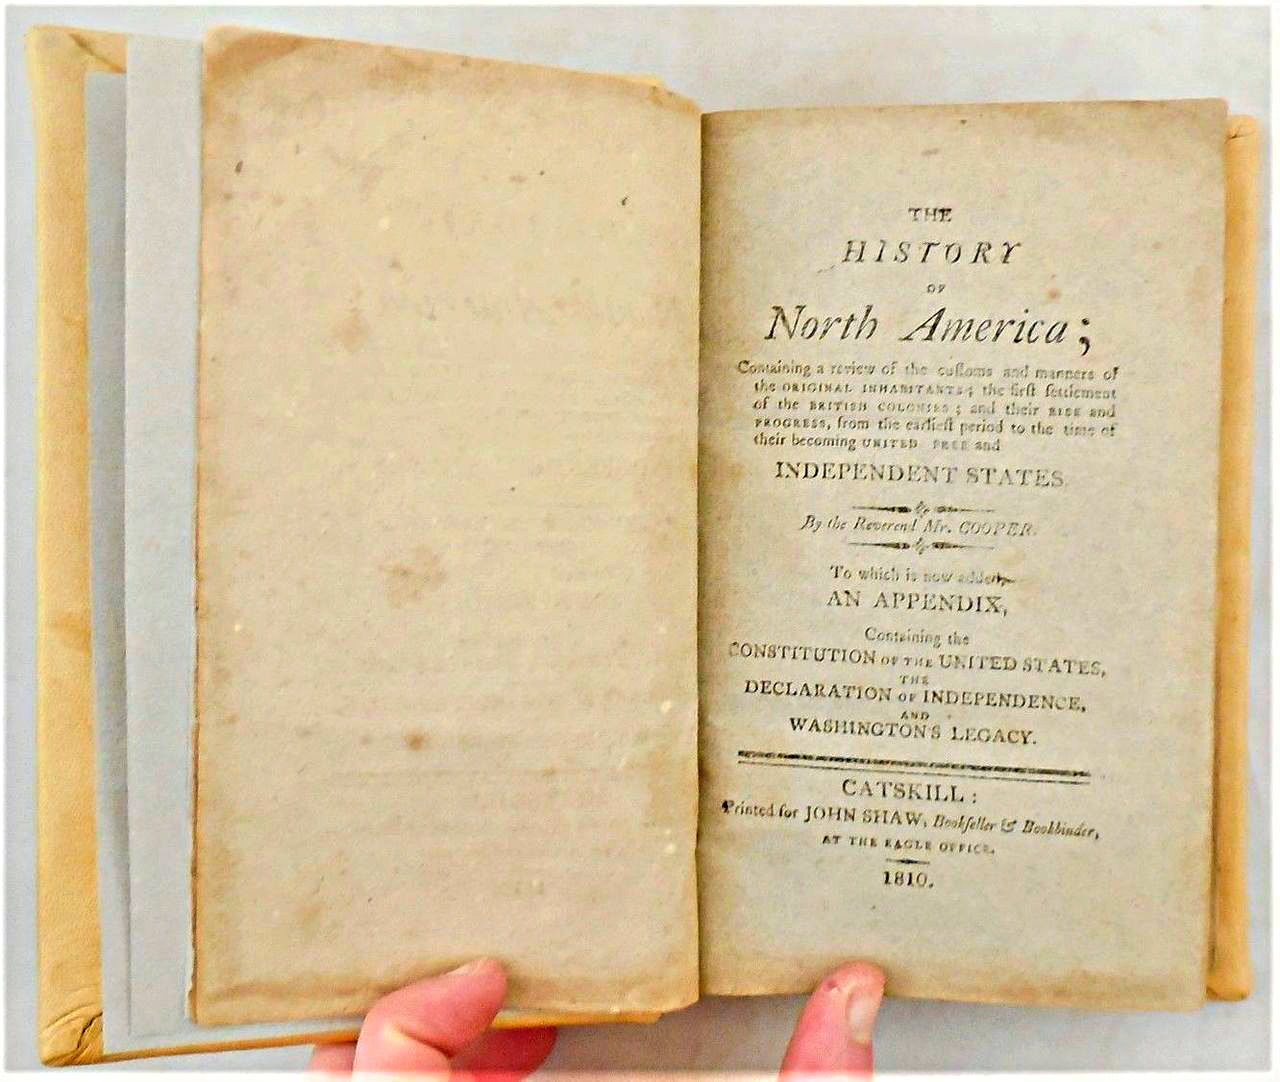 THE HISTORY OF NORTH AMERICA, by Reverend Mr W.D. Cooper - 1810